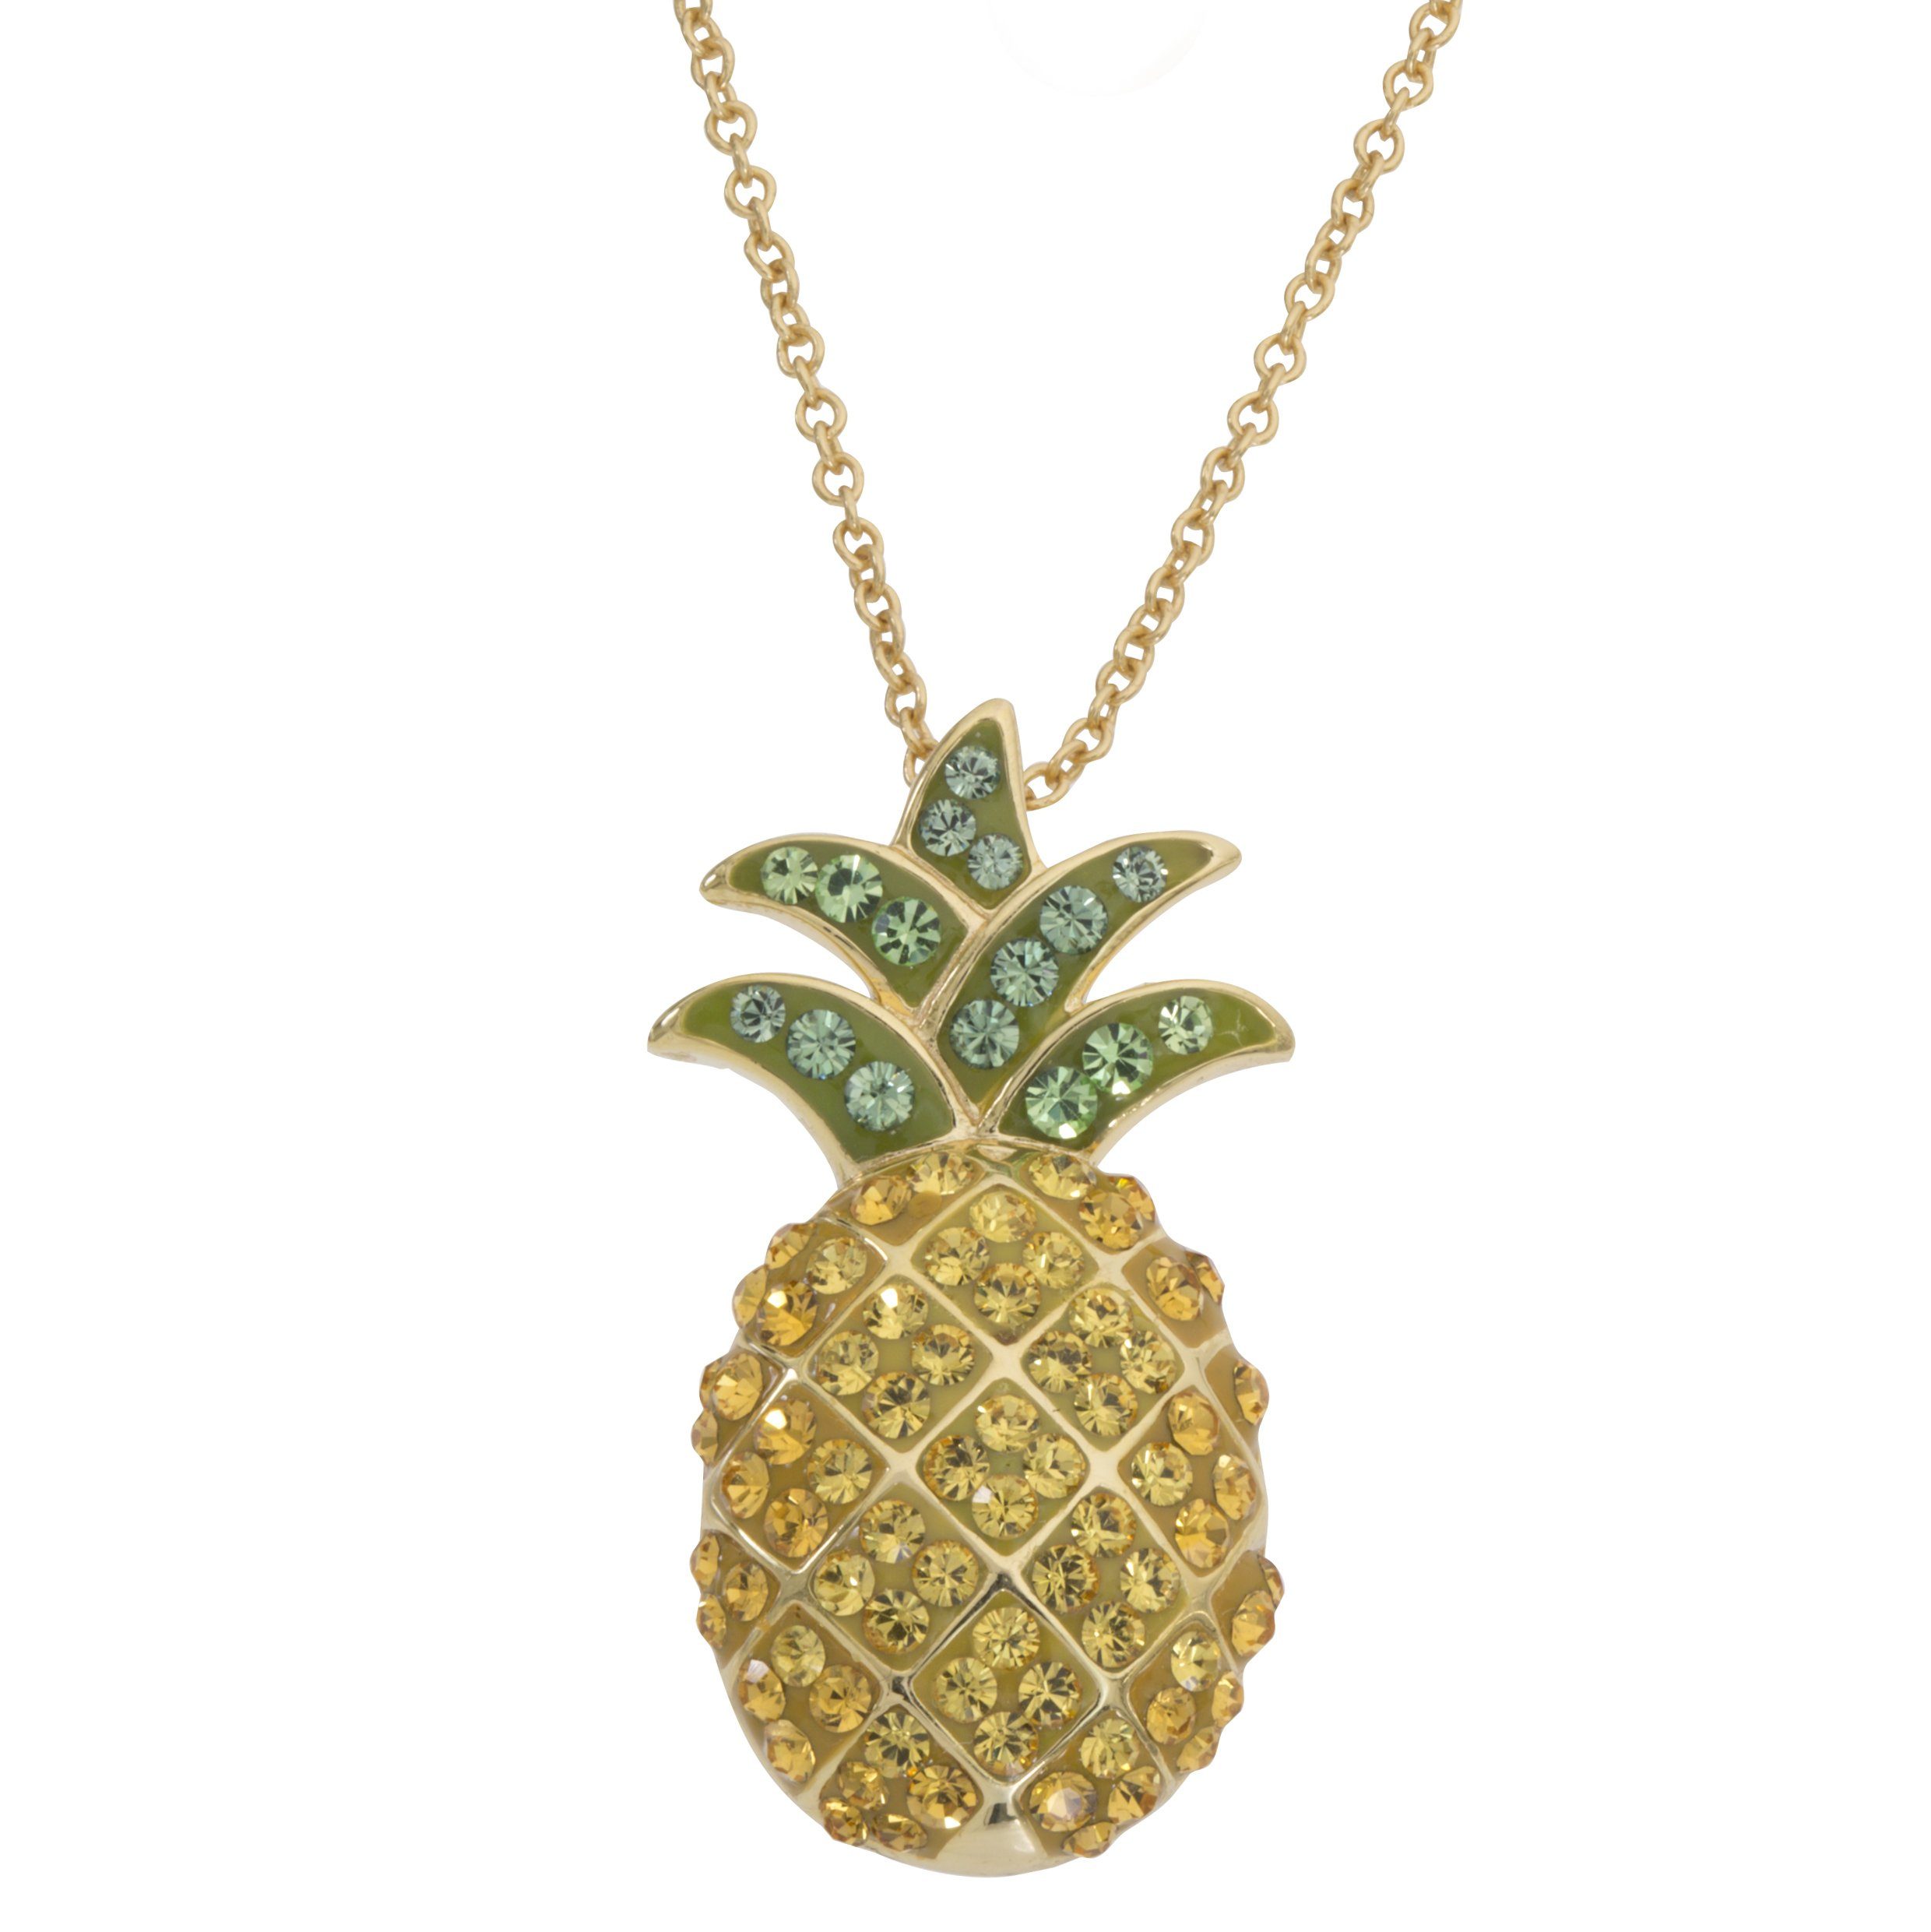 Crystalogy Yellow Gold Plated Sterling Silver Crystal Pineapple Pendant Necklace, 18''